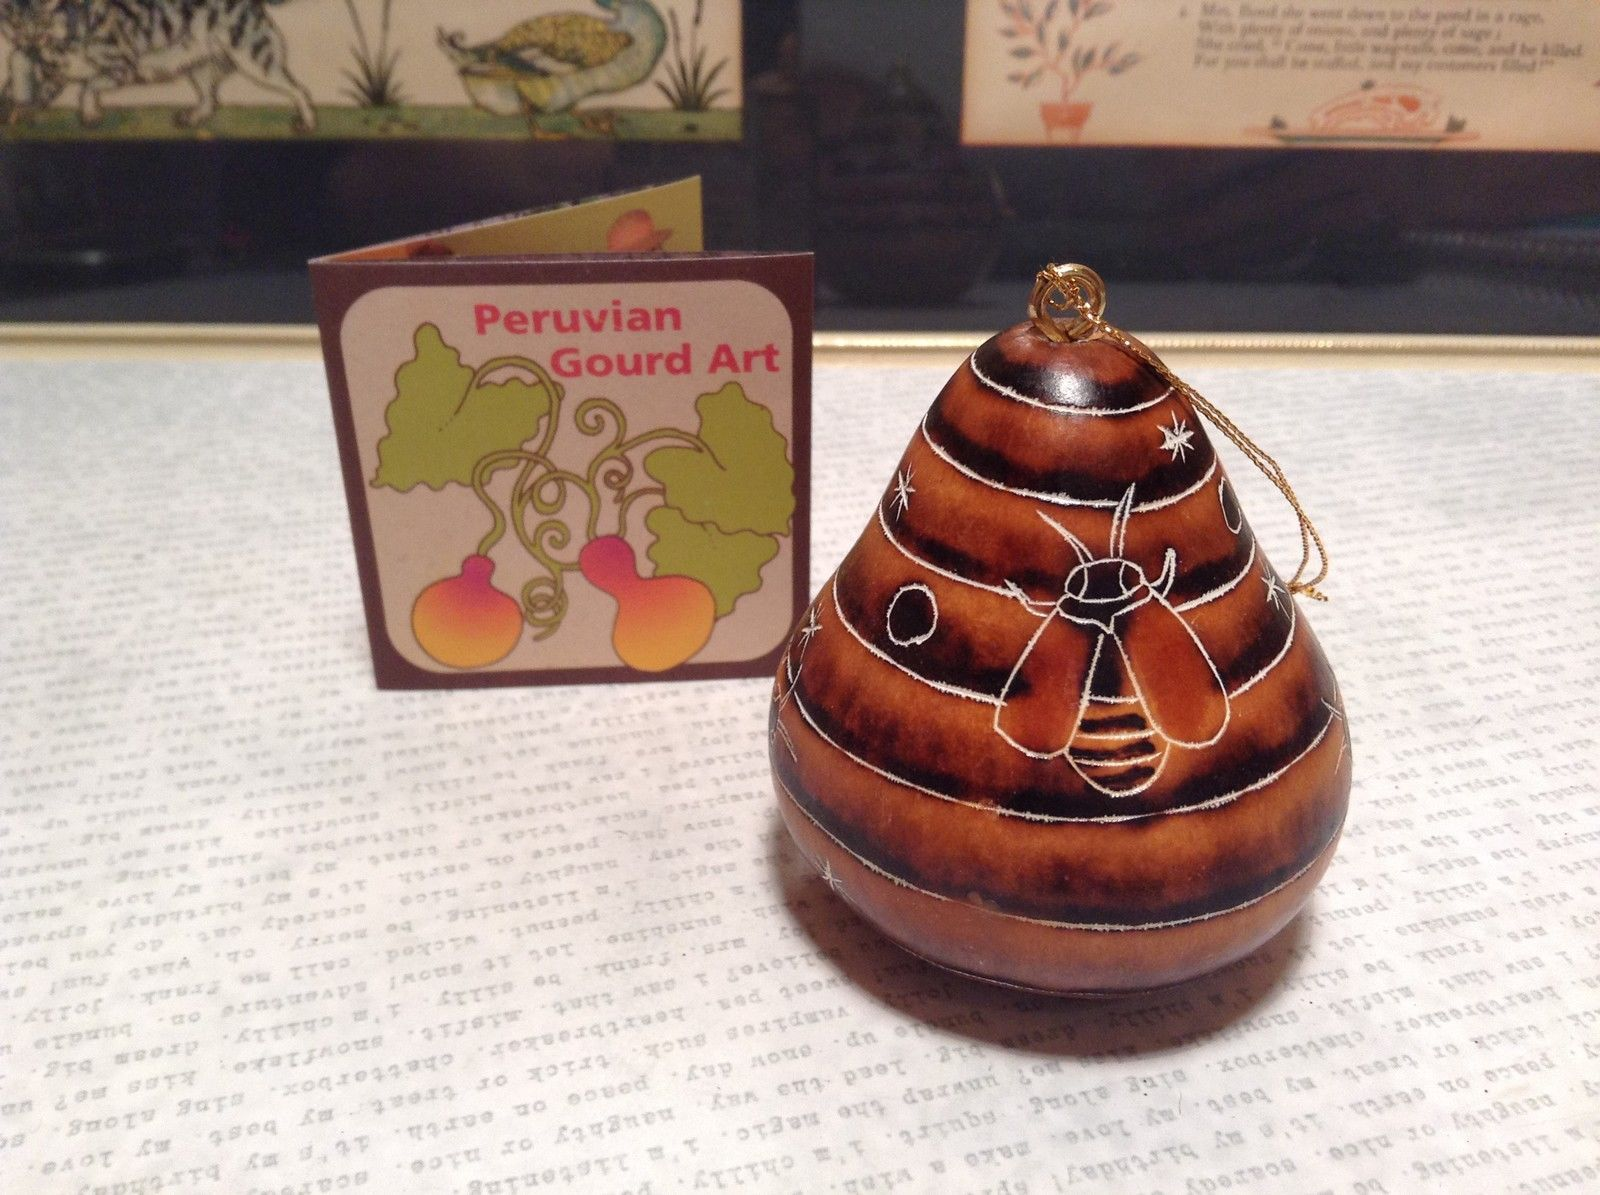 Beehive Shape Hand Carved Art Ornament Peruvian Gourd Eco Sustainable Fair Trade